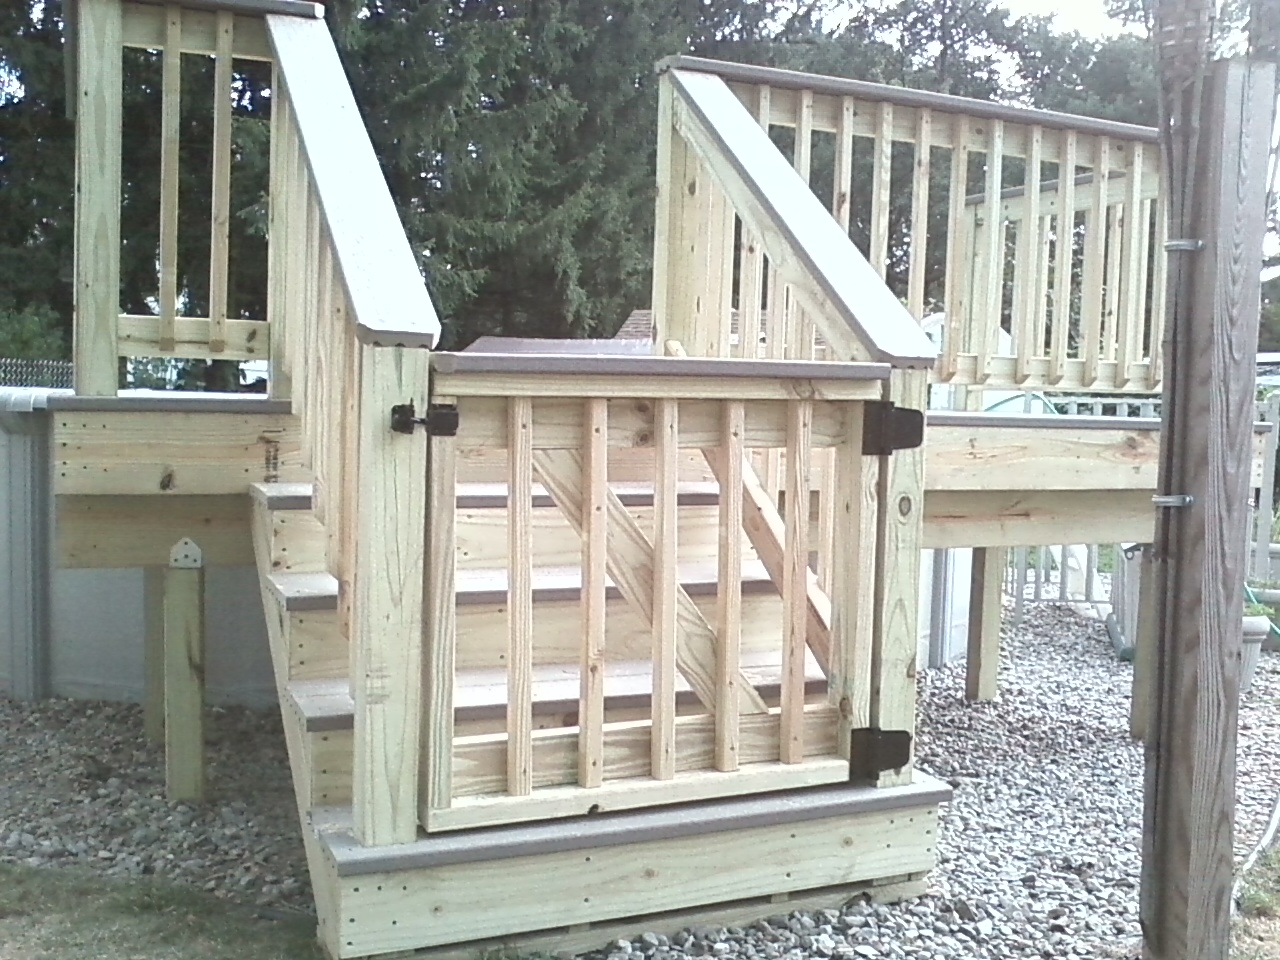 Home remodeling and improvements tips and how to 39 s for Cost of composite decking vs pressure treated